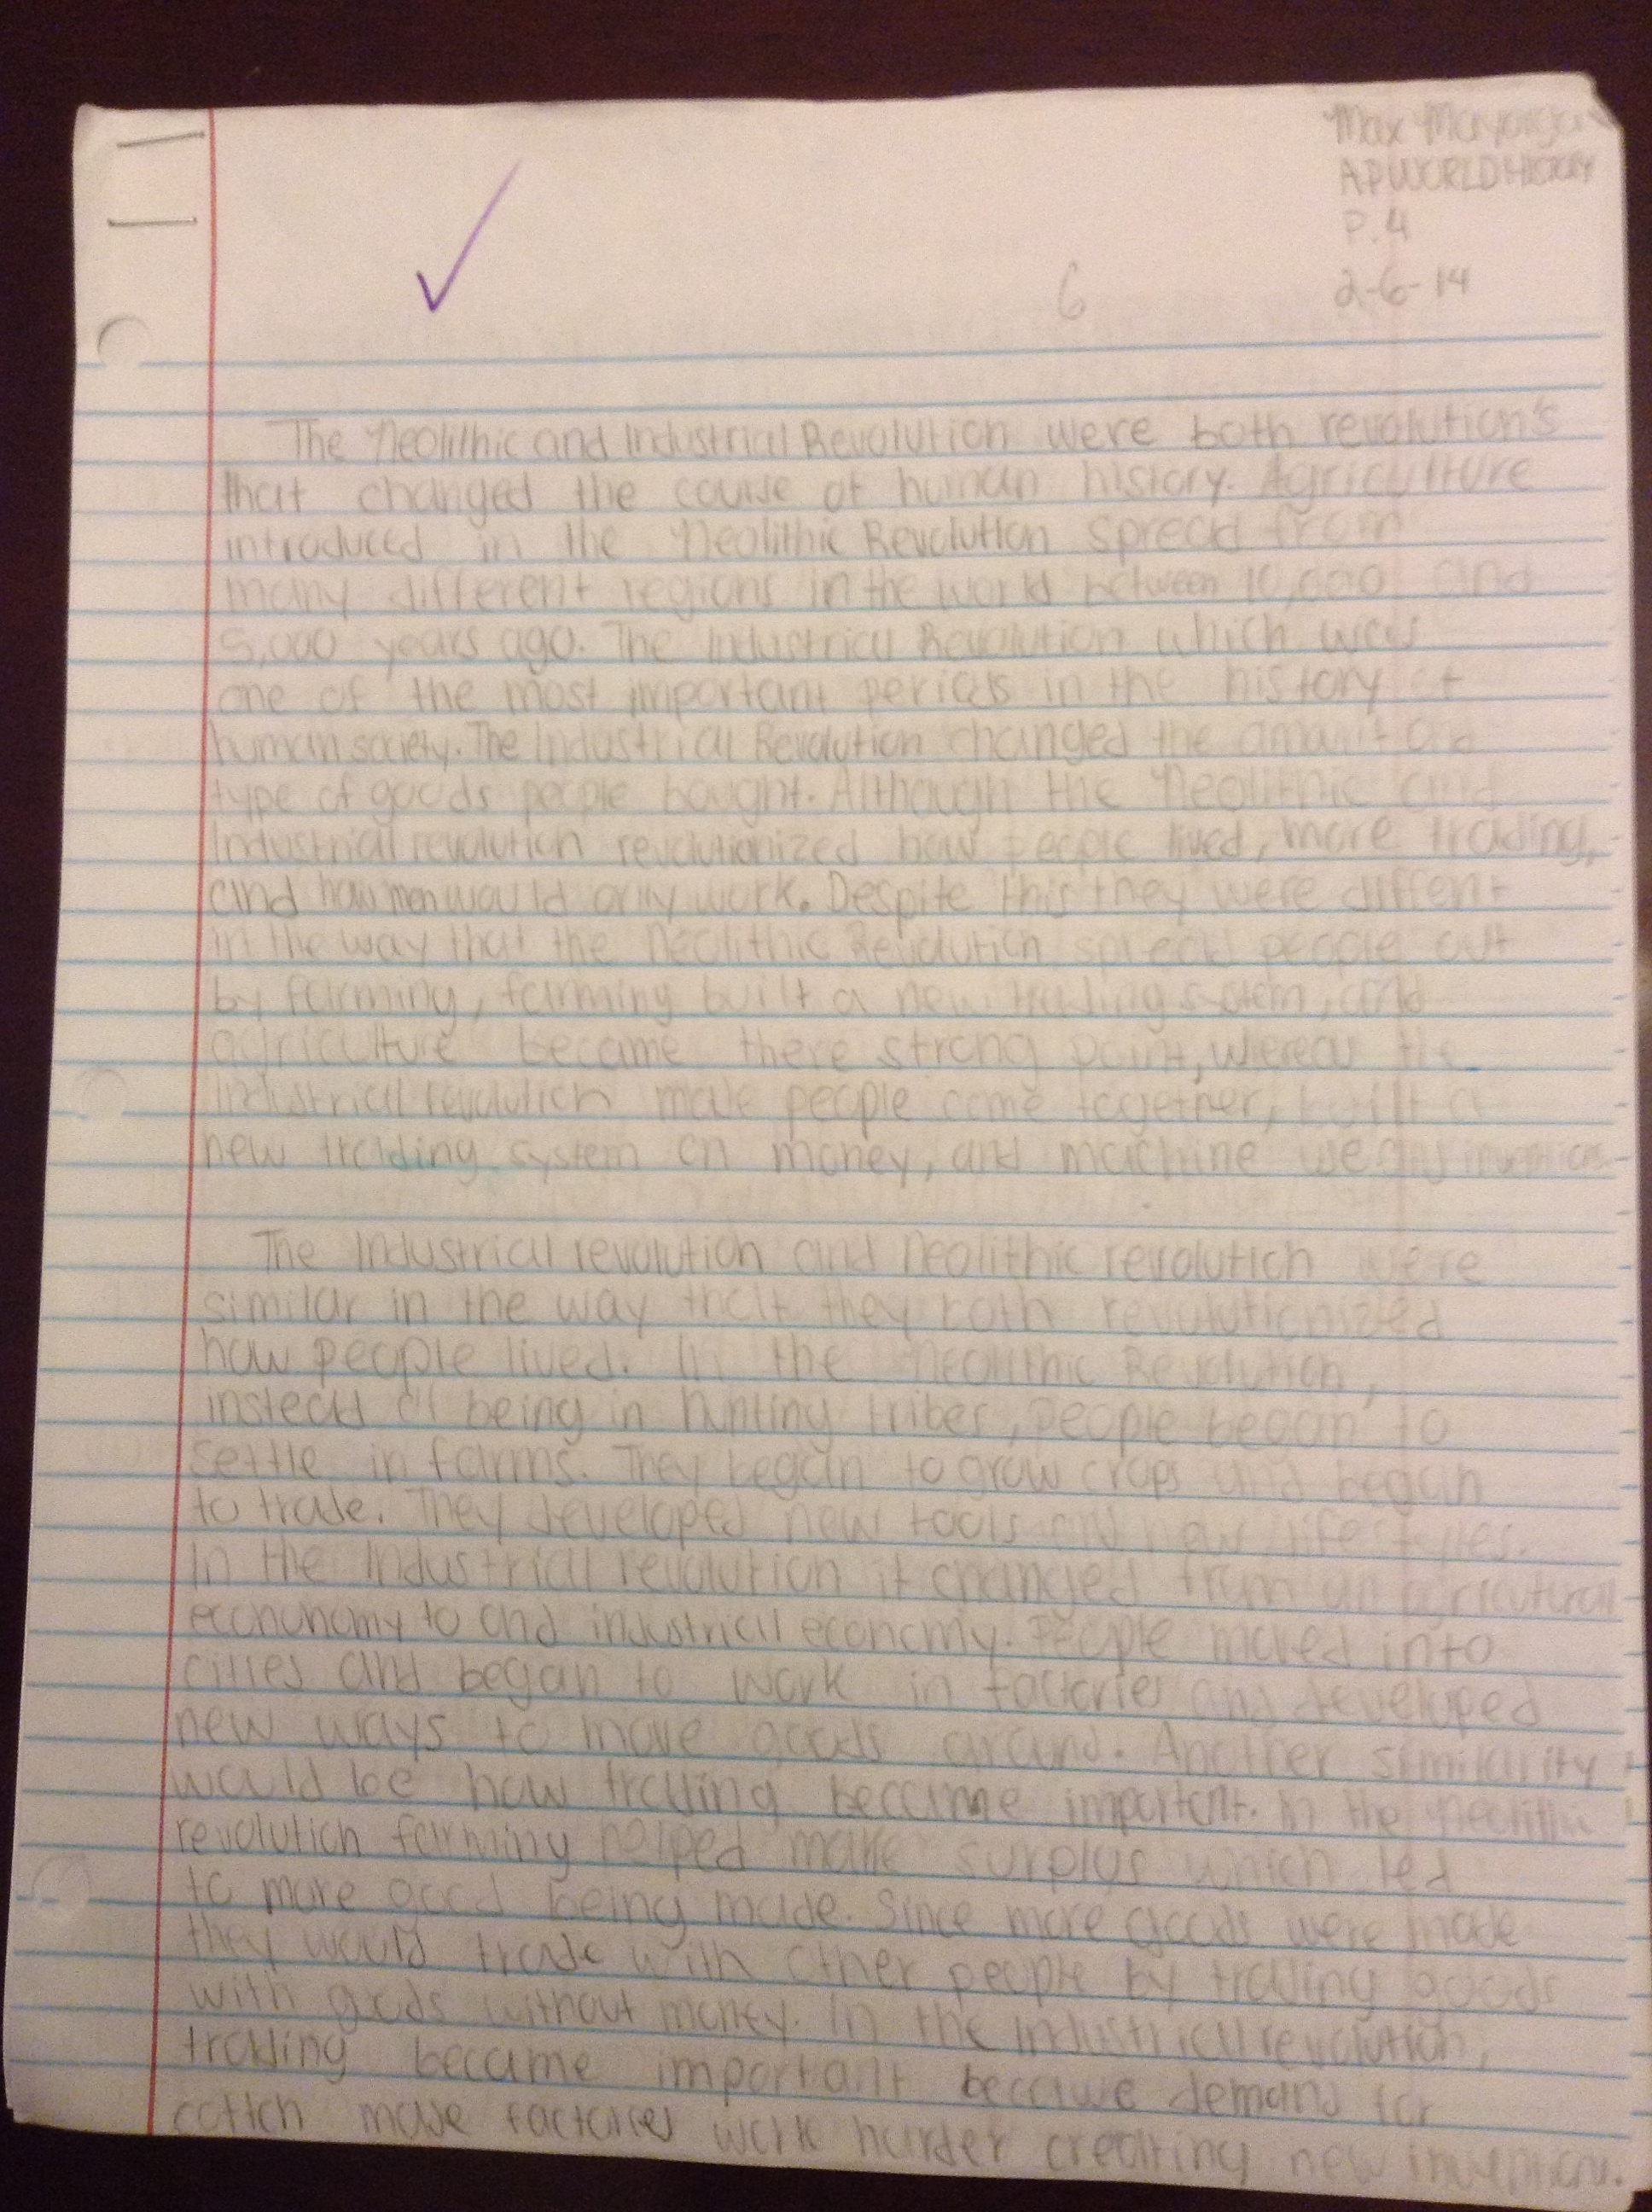 002 Image2010 Neolithic Revolution Essay Fearsome Turning Point Thematic Dbq Full